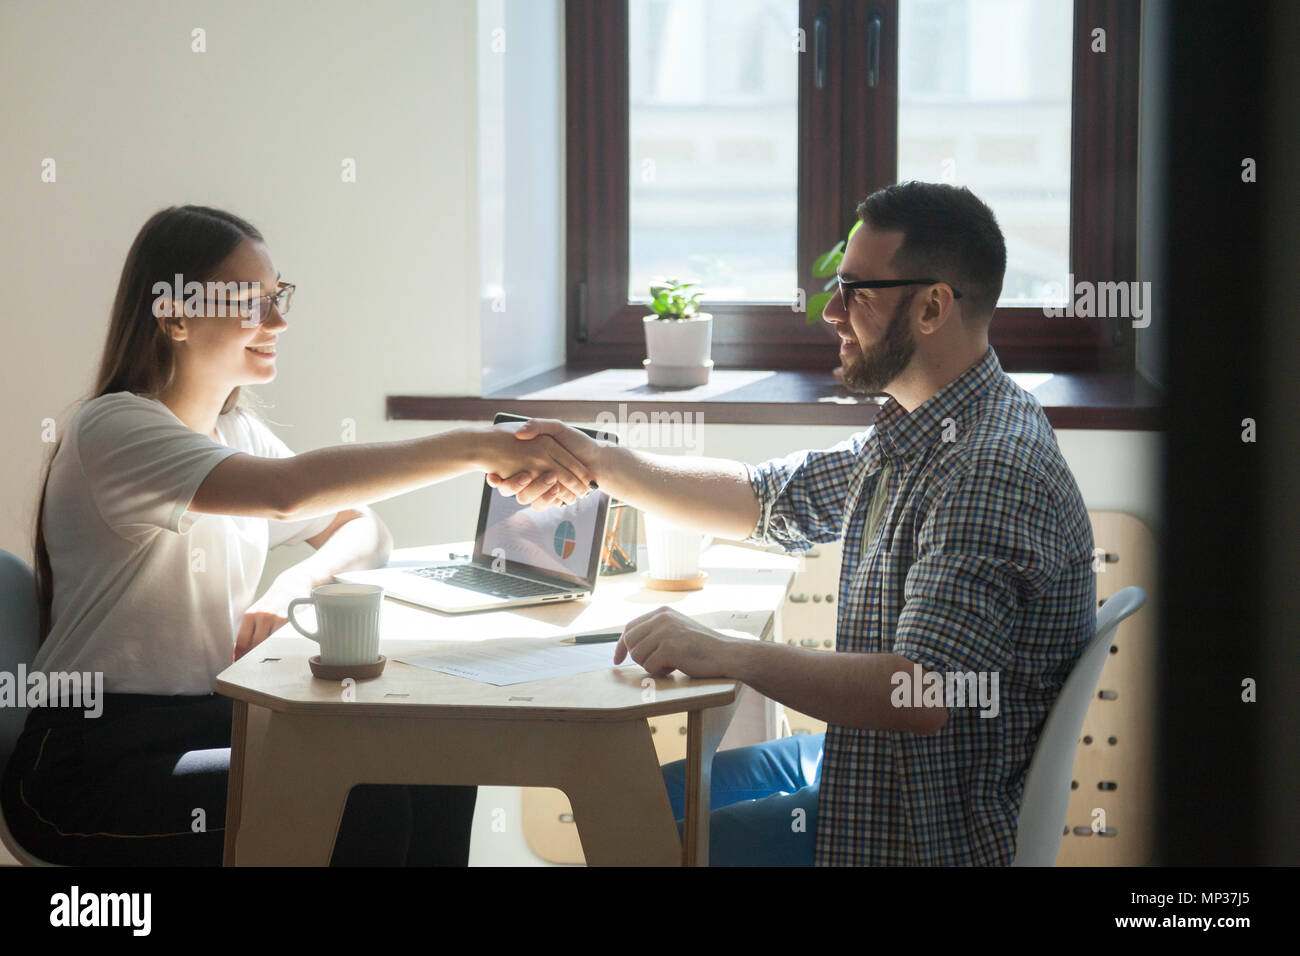 Female employer shaking hand of male job applicant - Stock Image